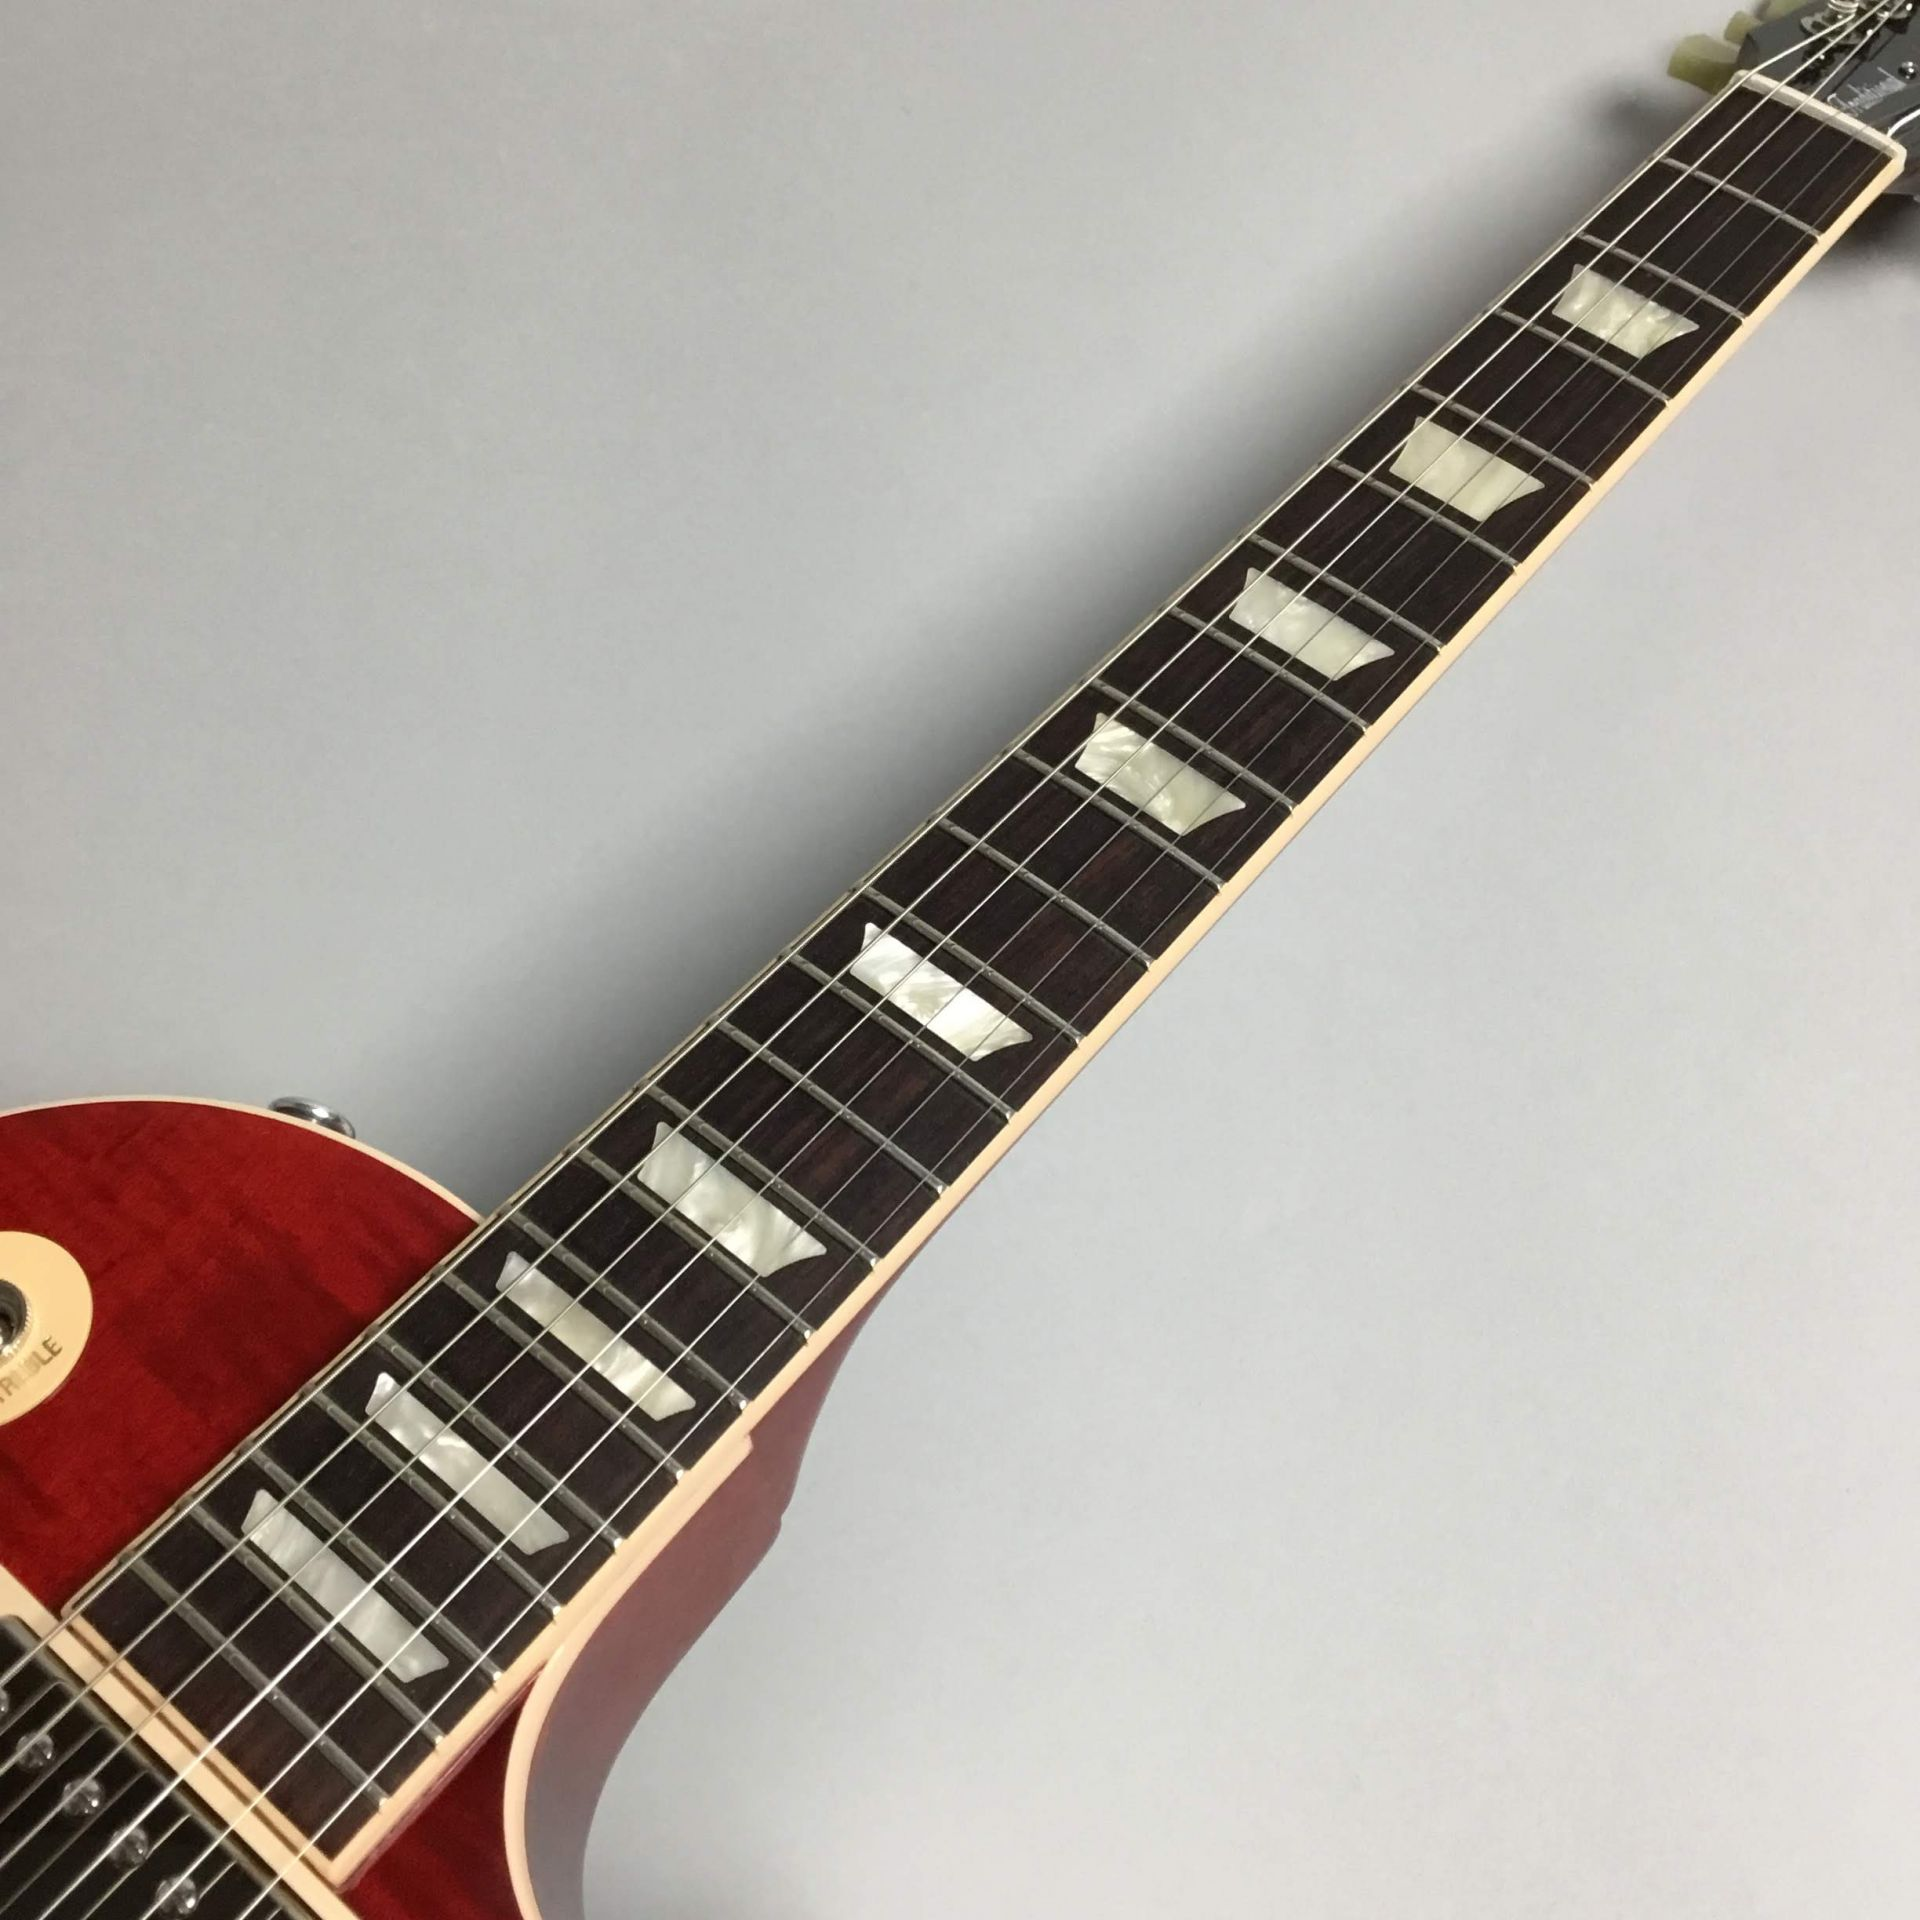 Les Paul Traditional 2018の指板画像